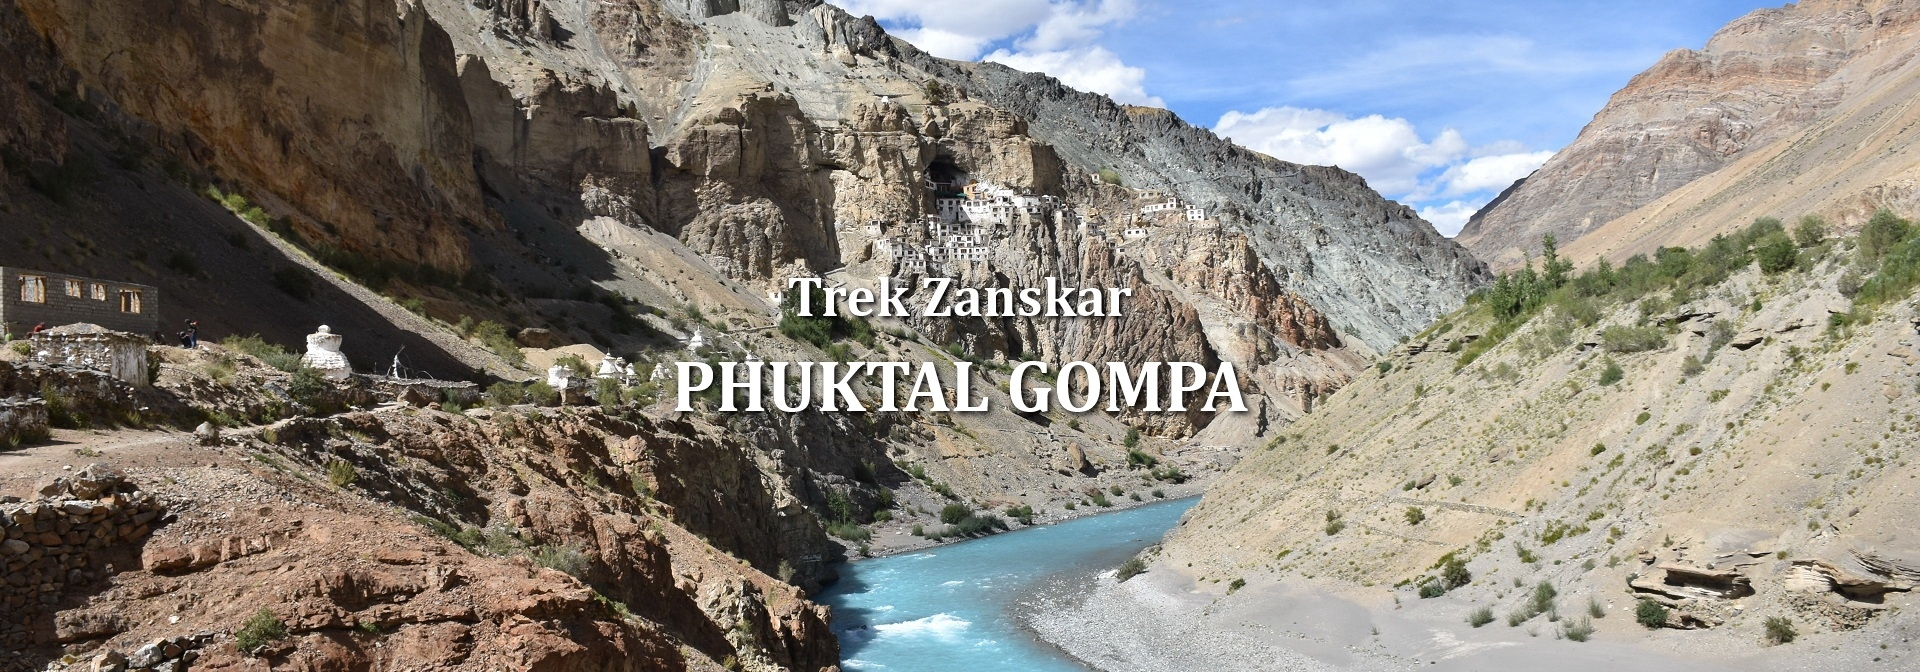 The Great Zanskar Traverse